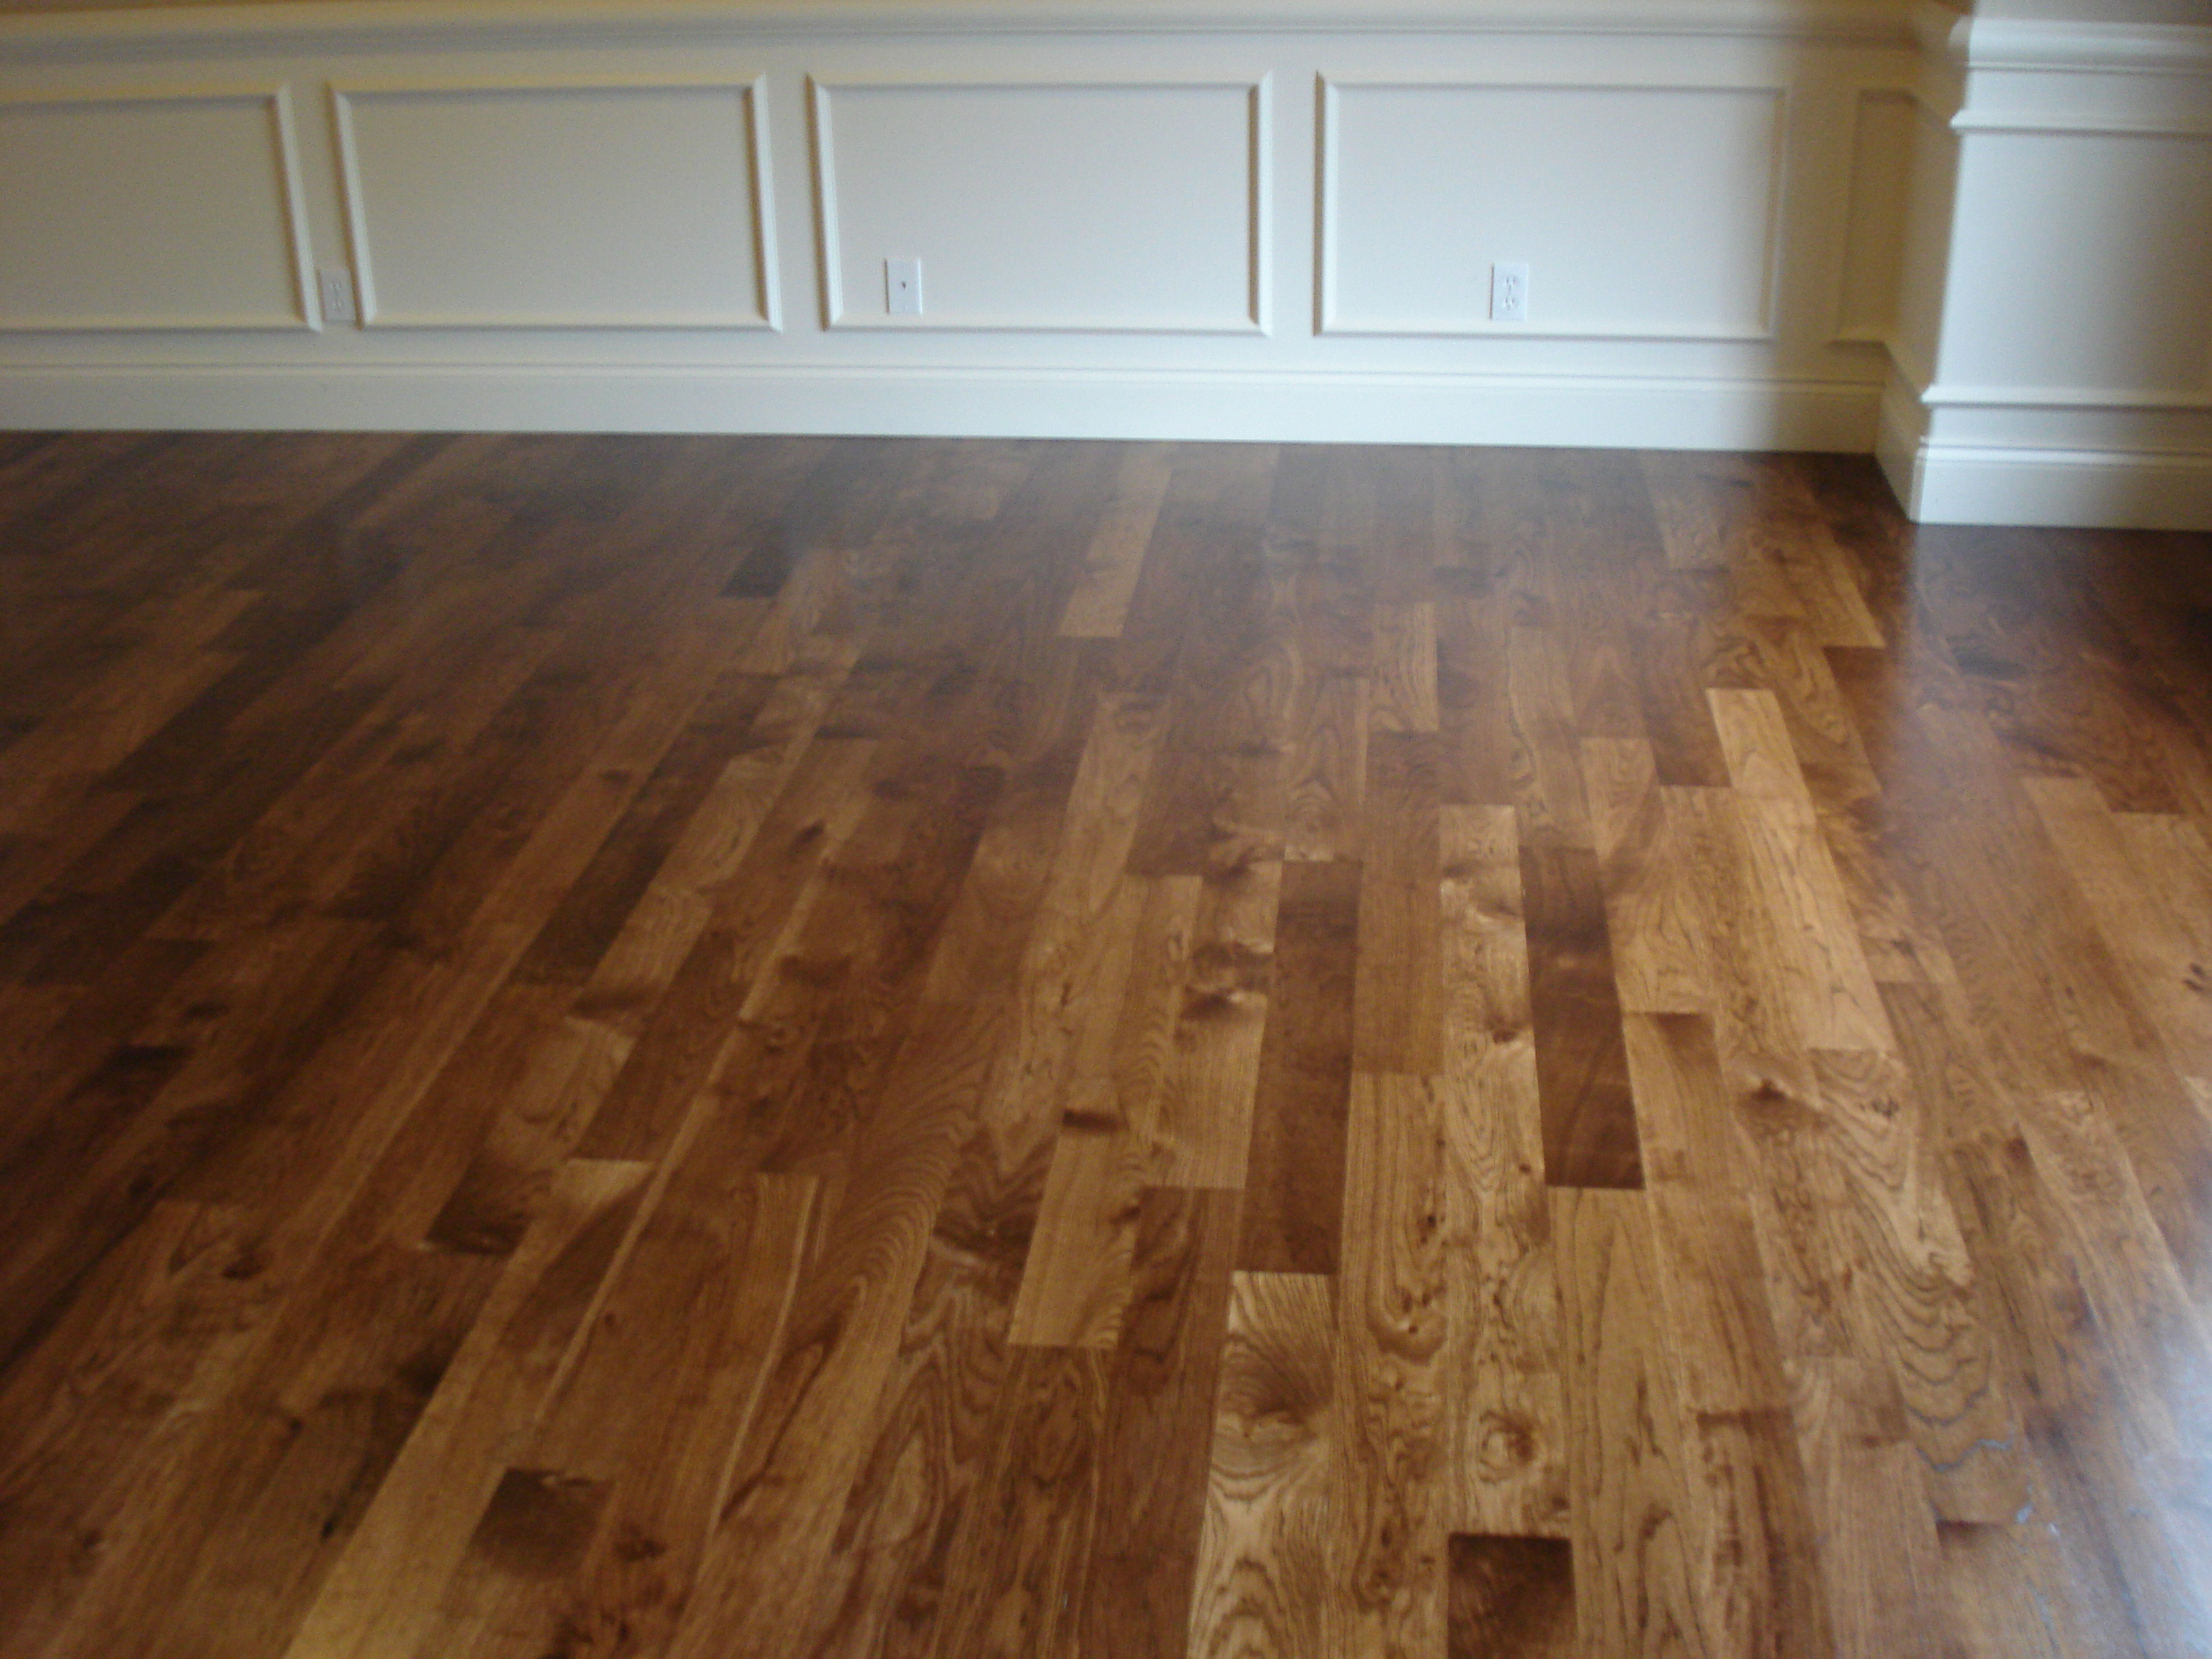 Empty Room Hardwood Floor 2